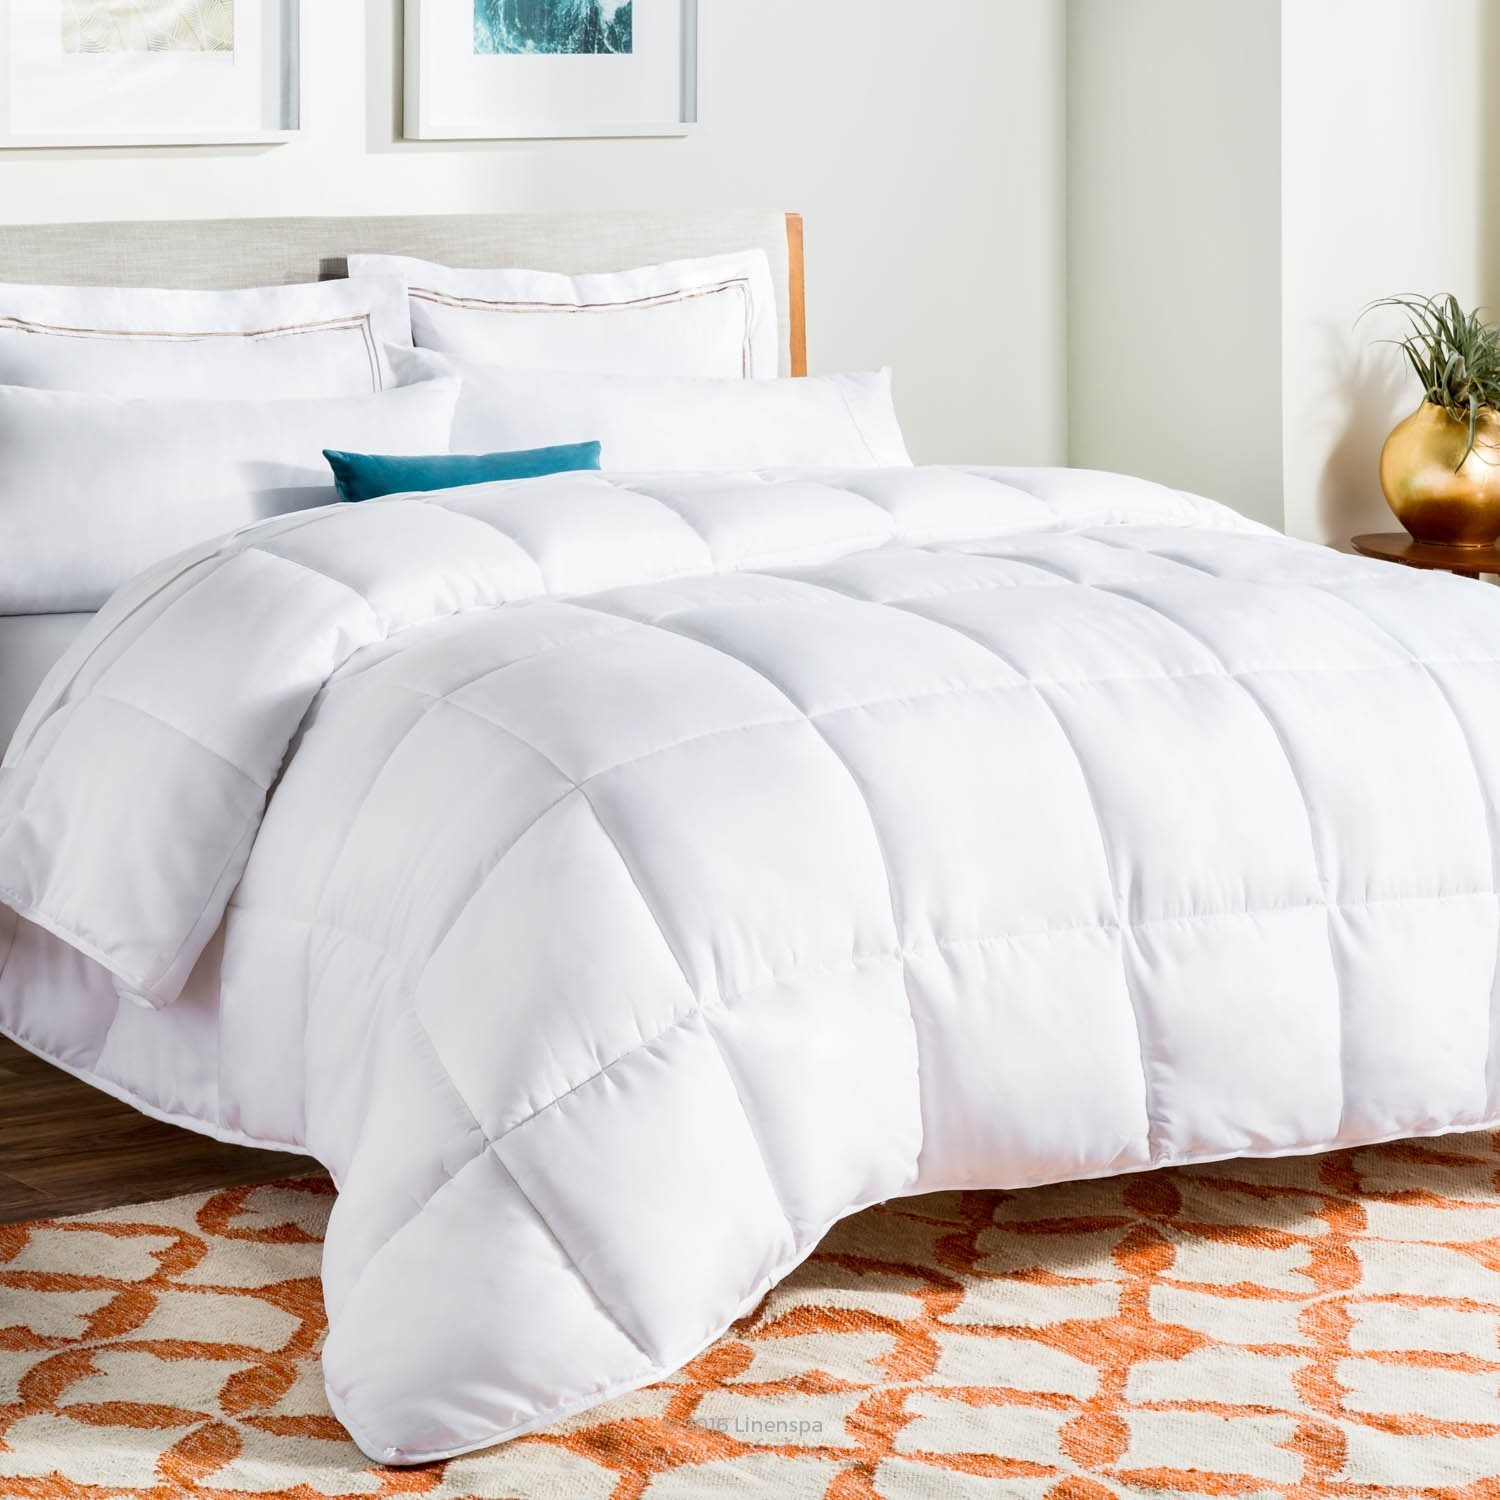 The 5 softest down comforters